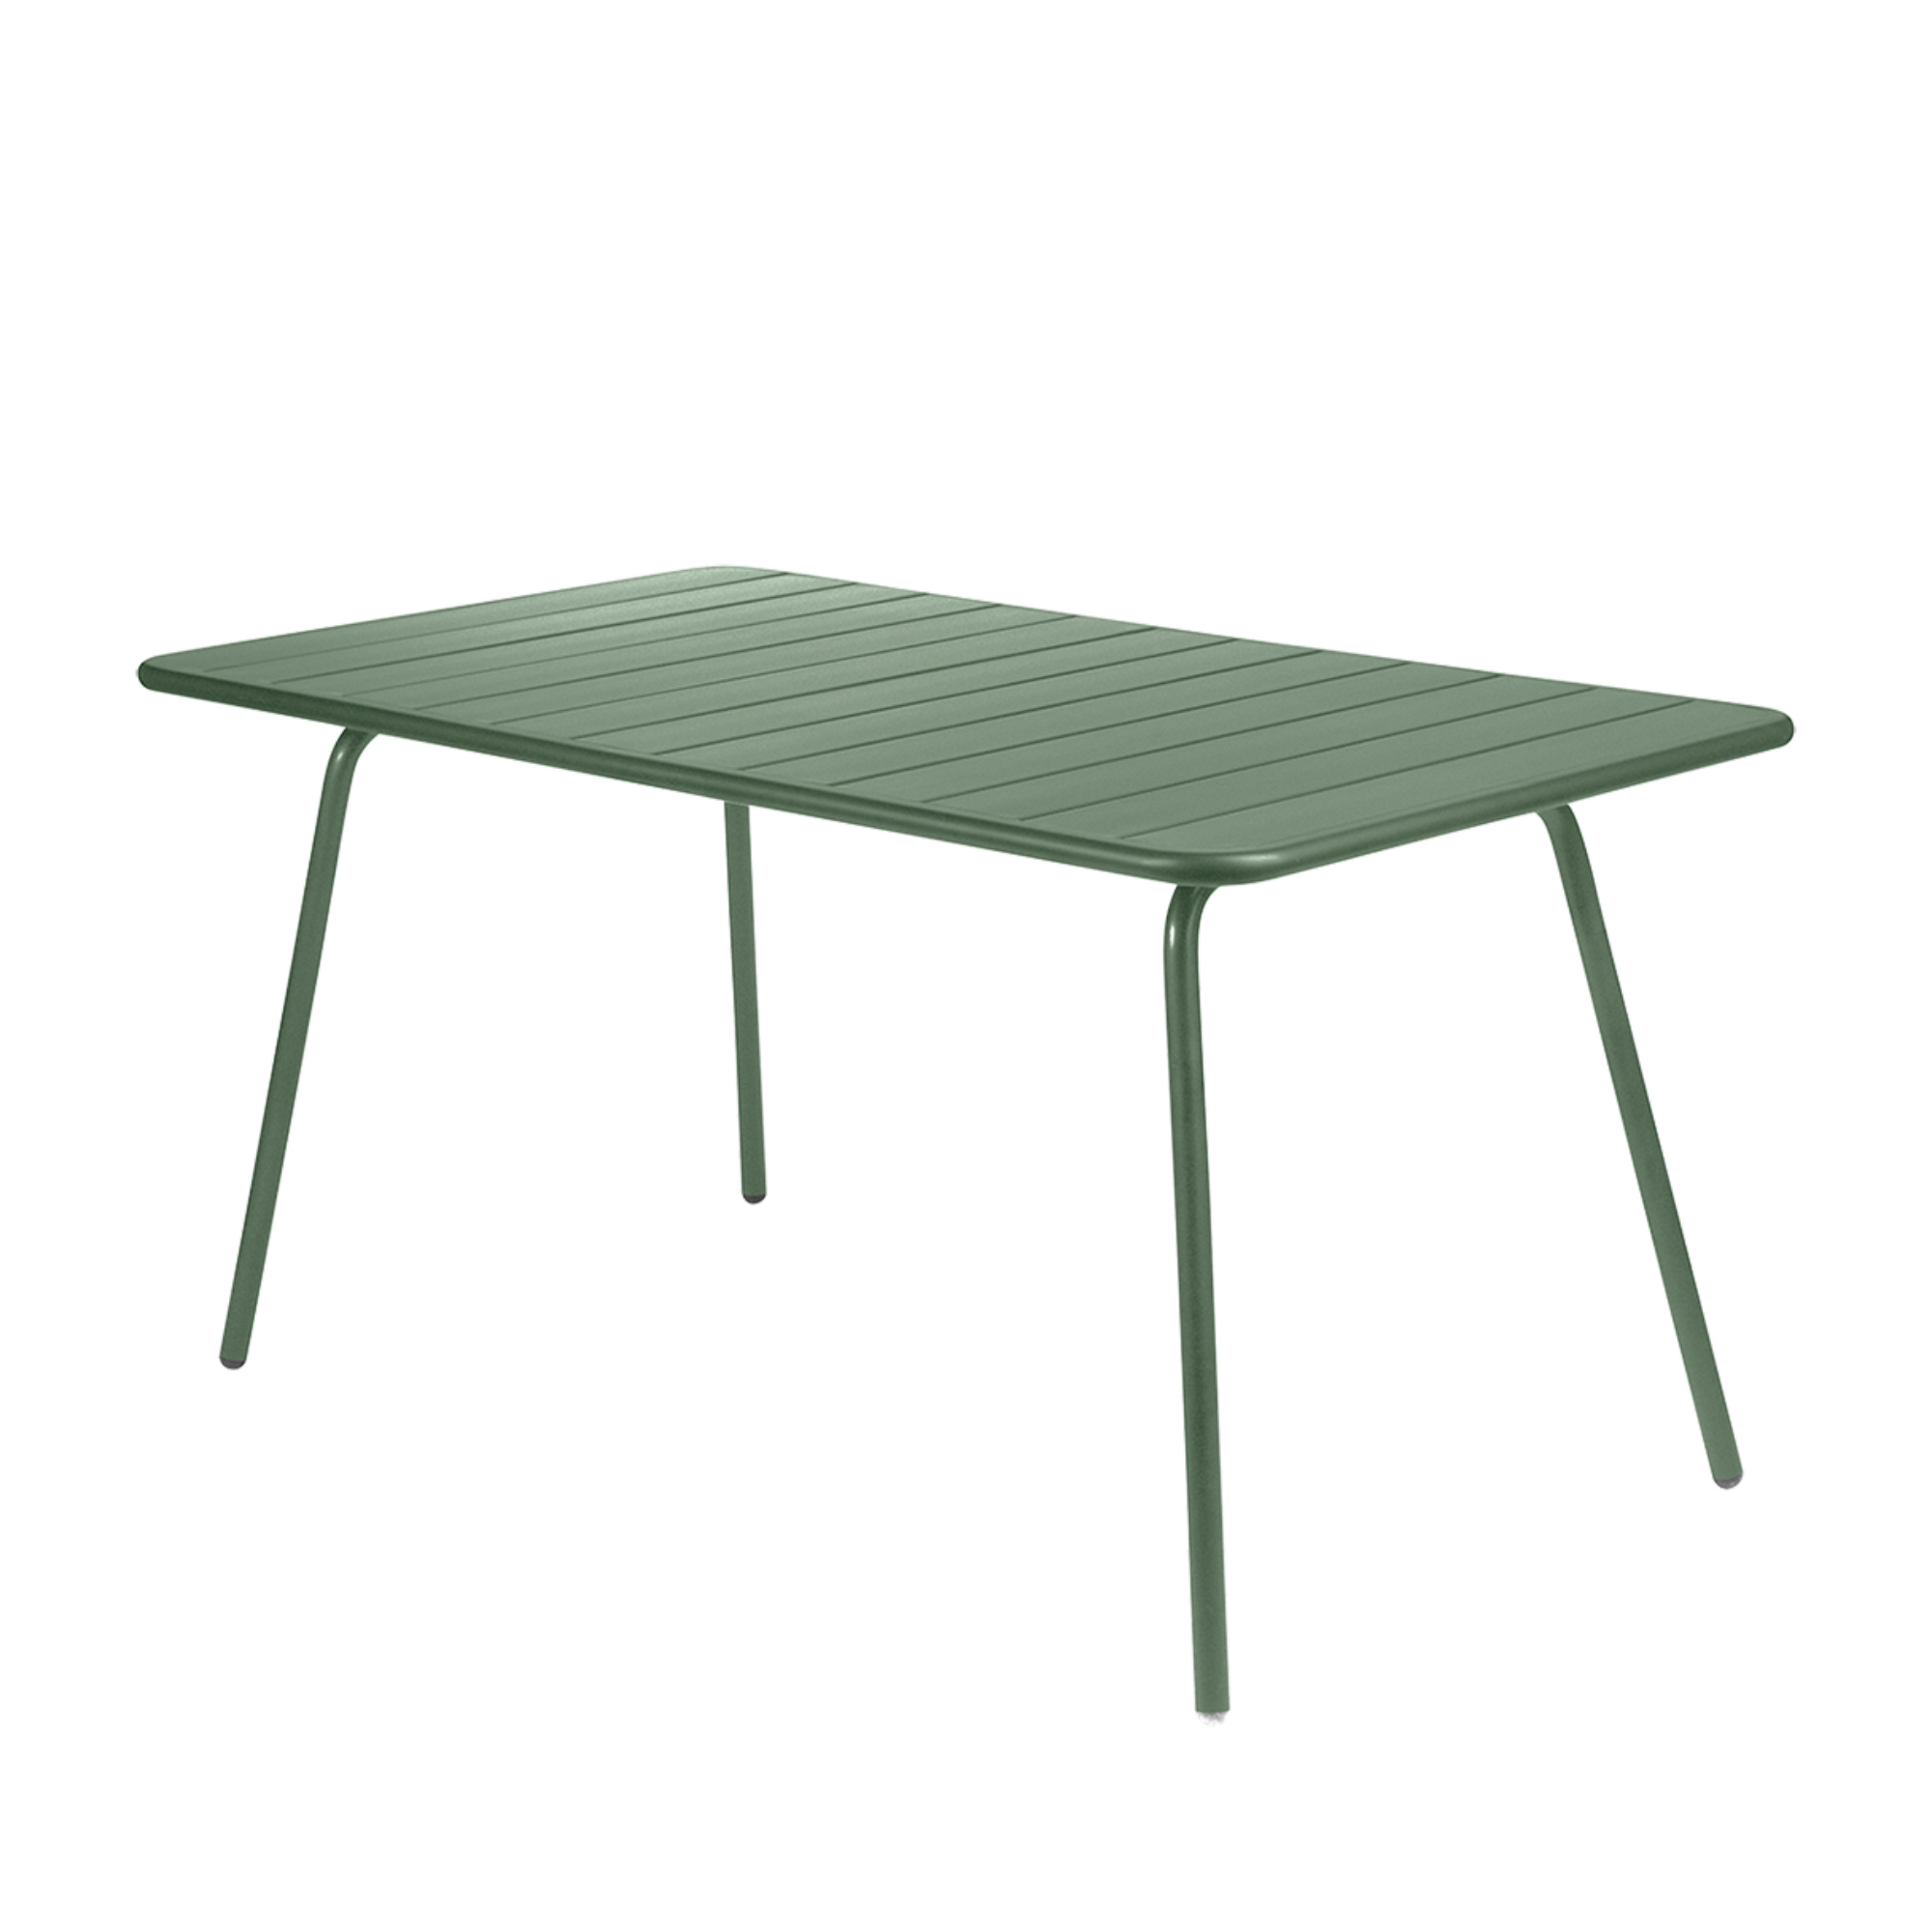 Fermob Luxembourg tafel 143x80cm